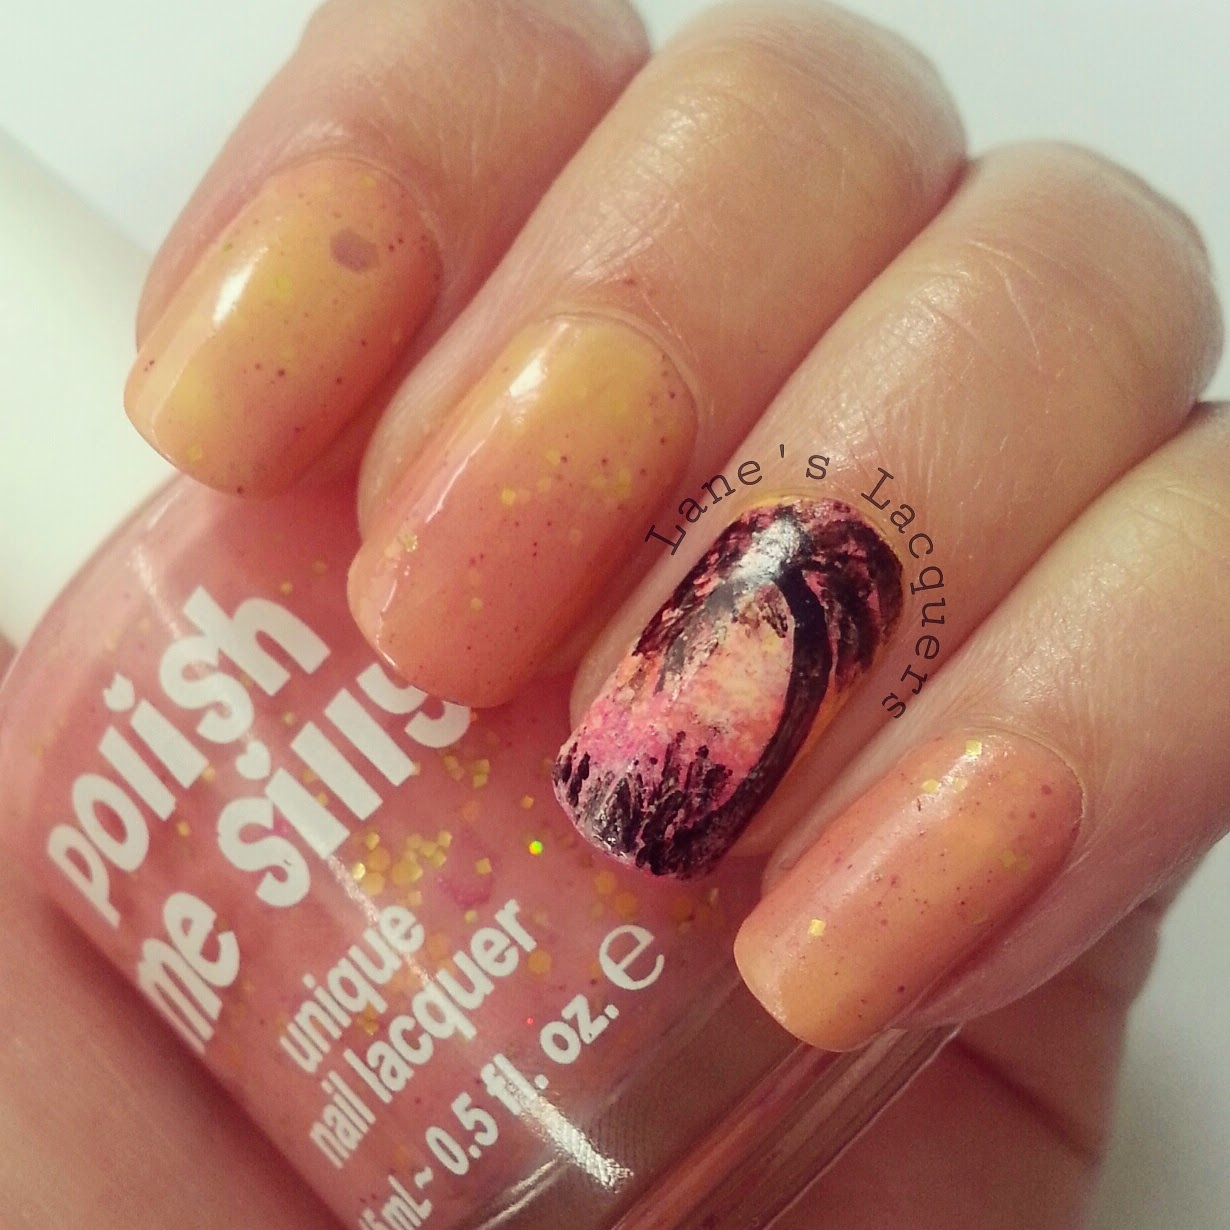 polish-me-silly-sizzling-sunset-sunset-manicure